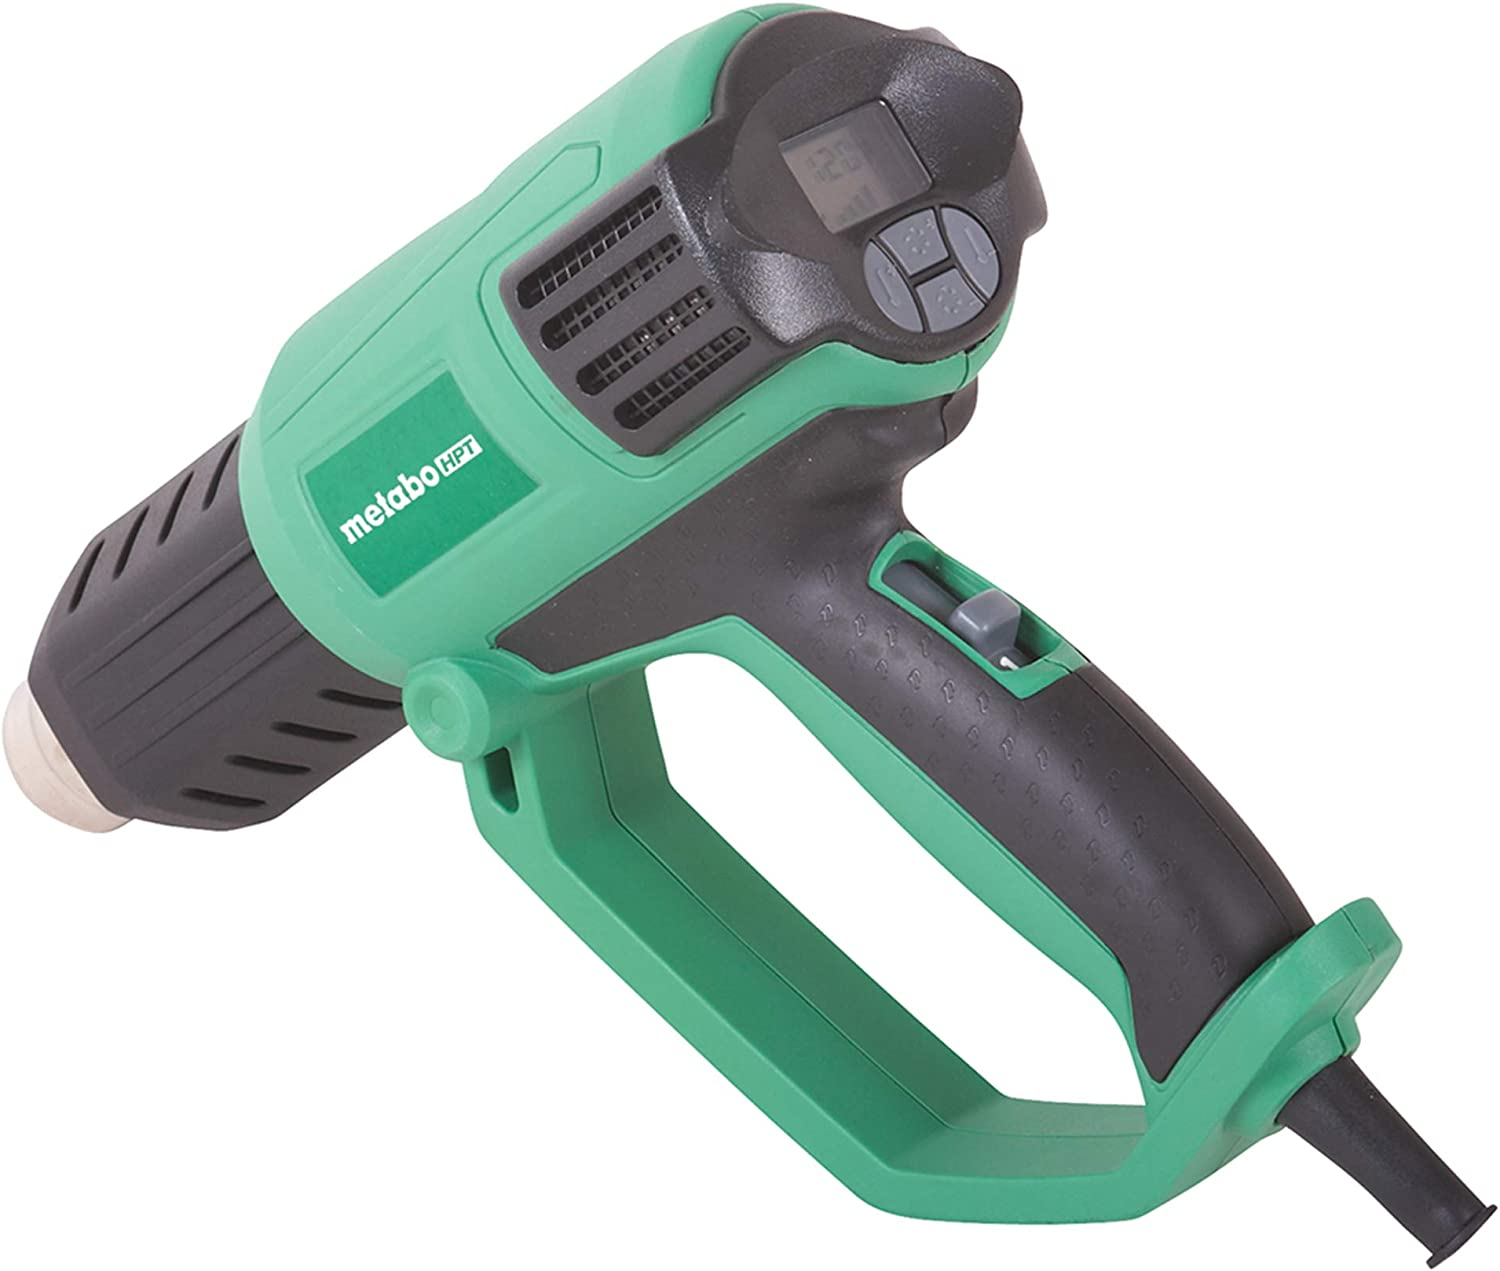 Metabo HPT Heat Gun, Variable Heat & Fan Settings, LCD Display, Includes Glass Protector Nozzle, Spreader Nozzle, Hook Nozzle, Concentrator Nozzle, Handheld Scraper, Storage Case (RH650V)